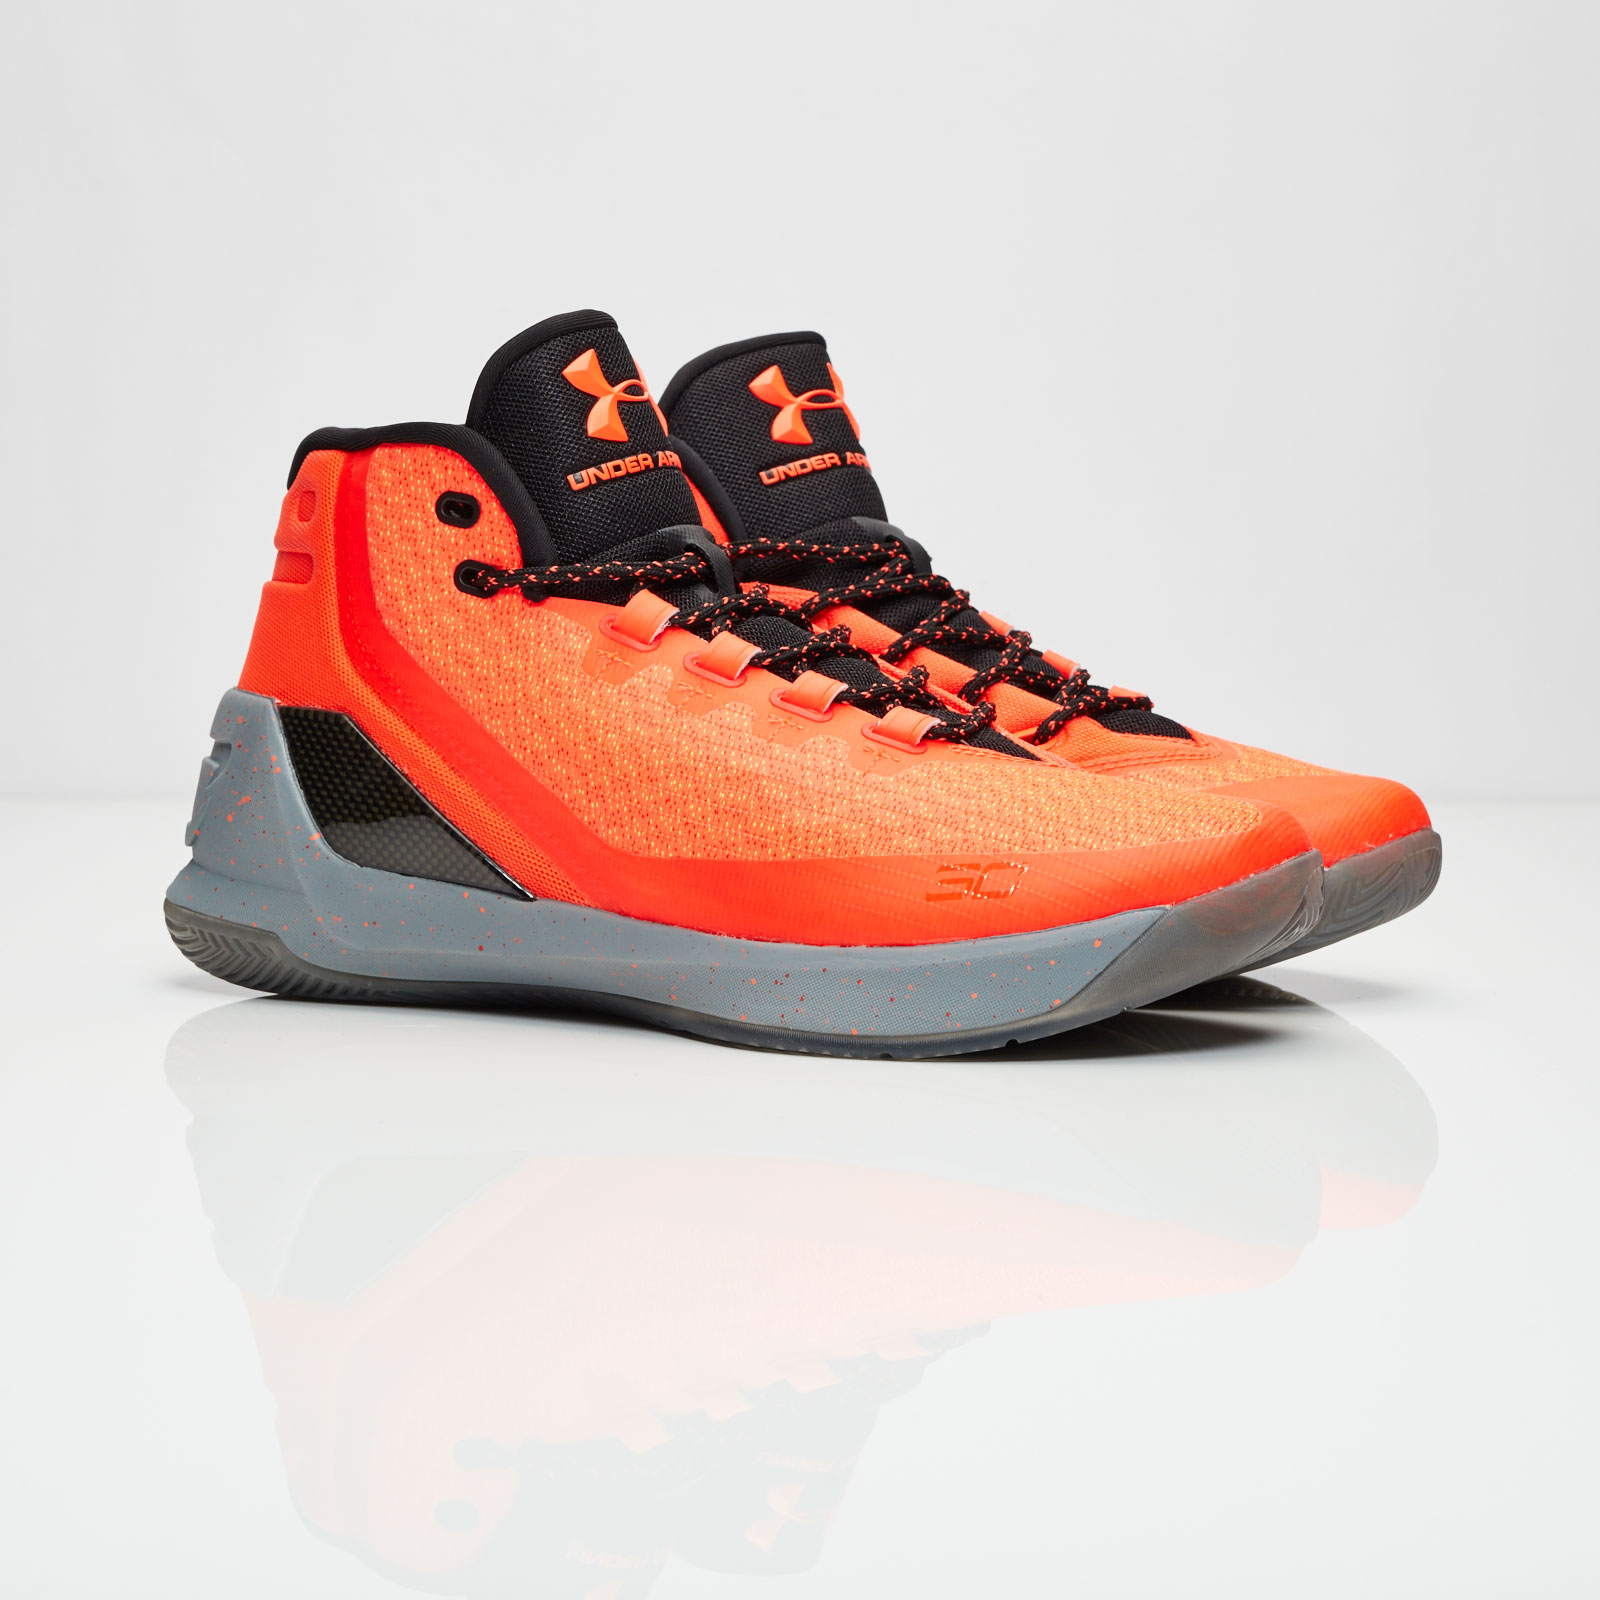 294aa4056d9 Under Armour UA Curry 3 - 1269279-810 - Sneakersnstuff